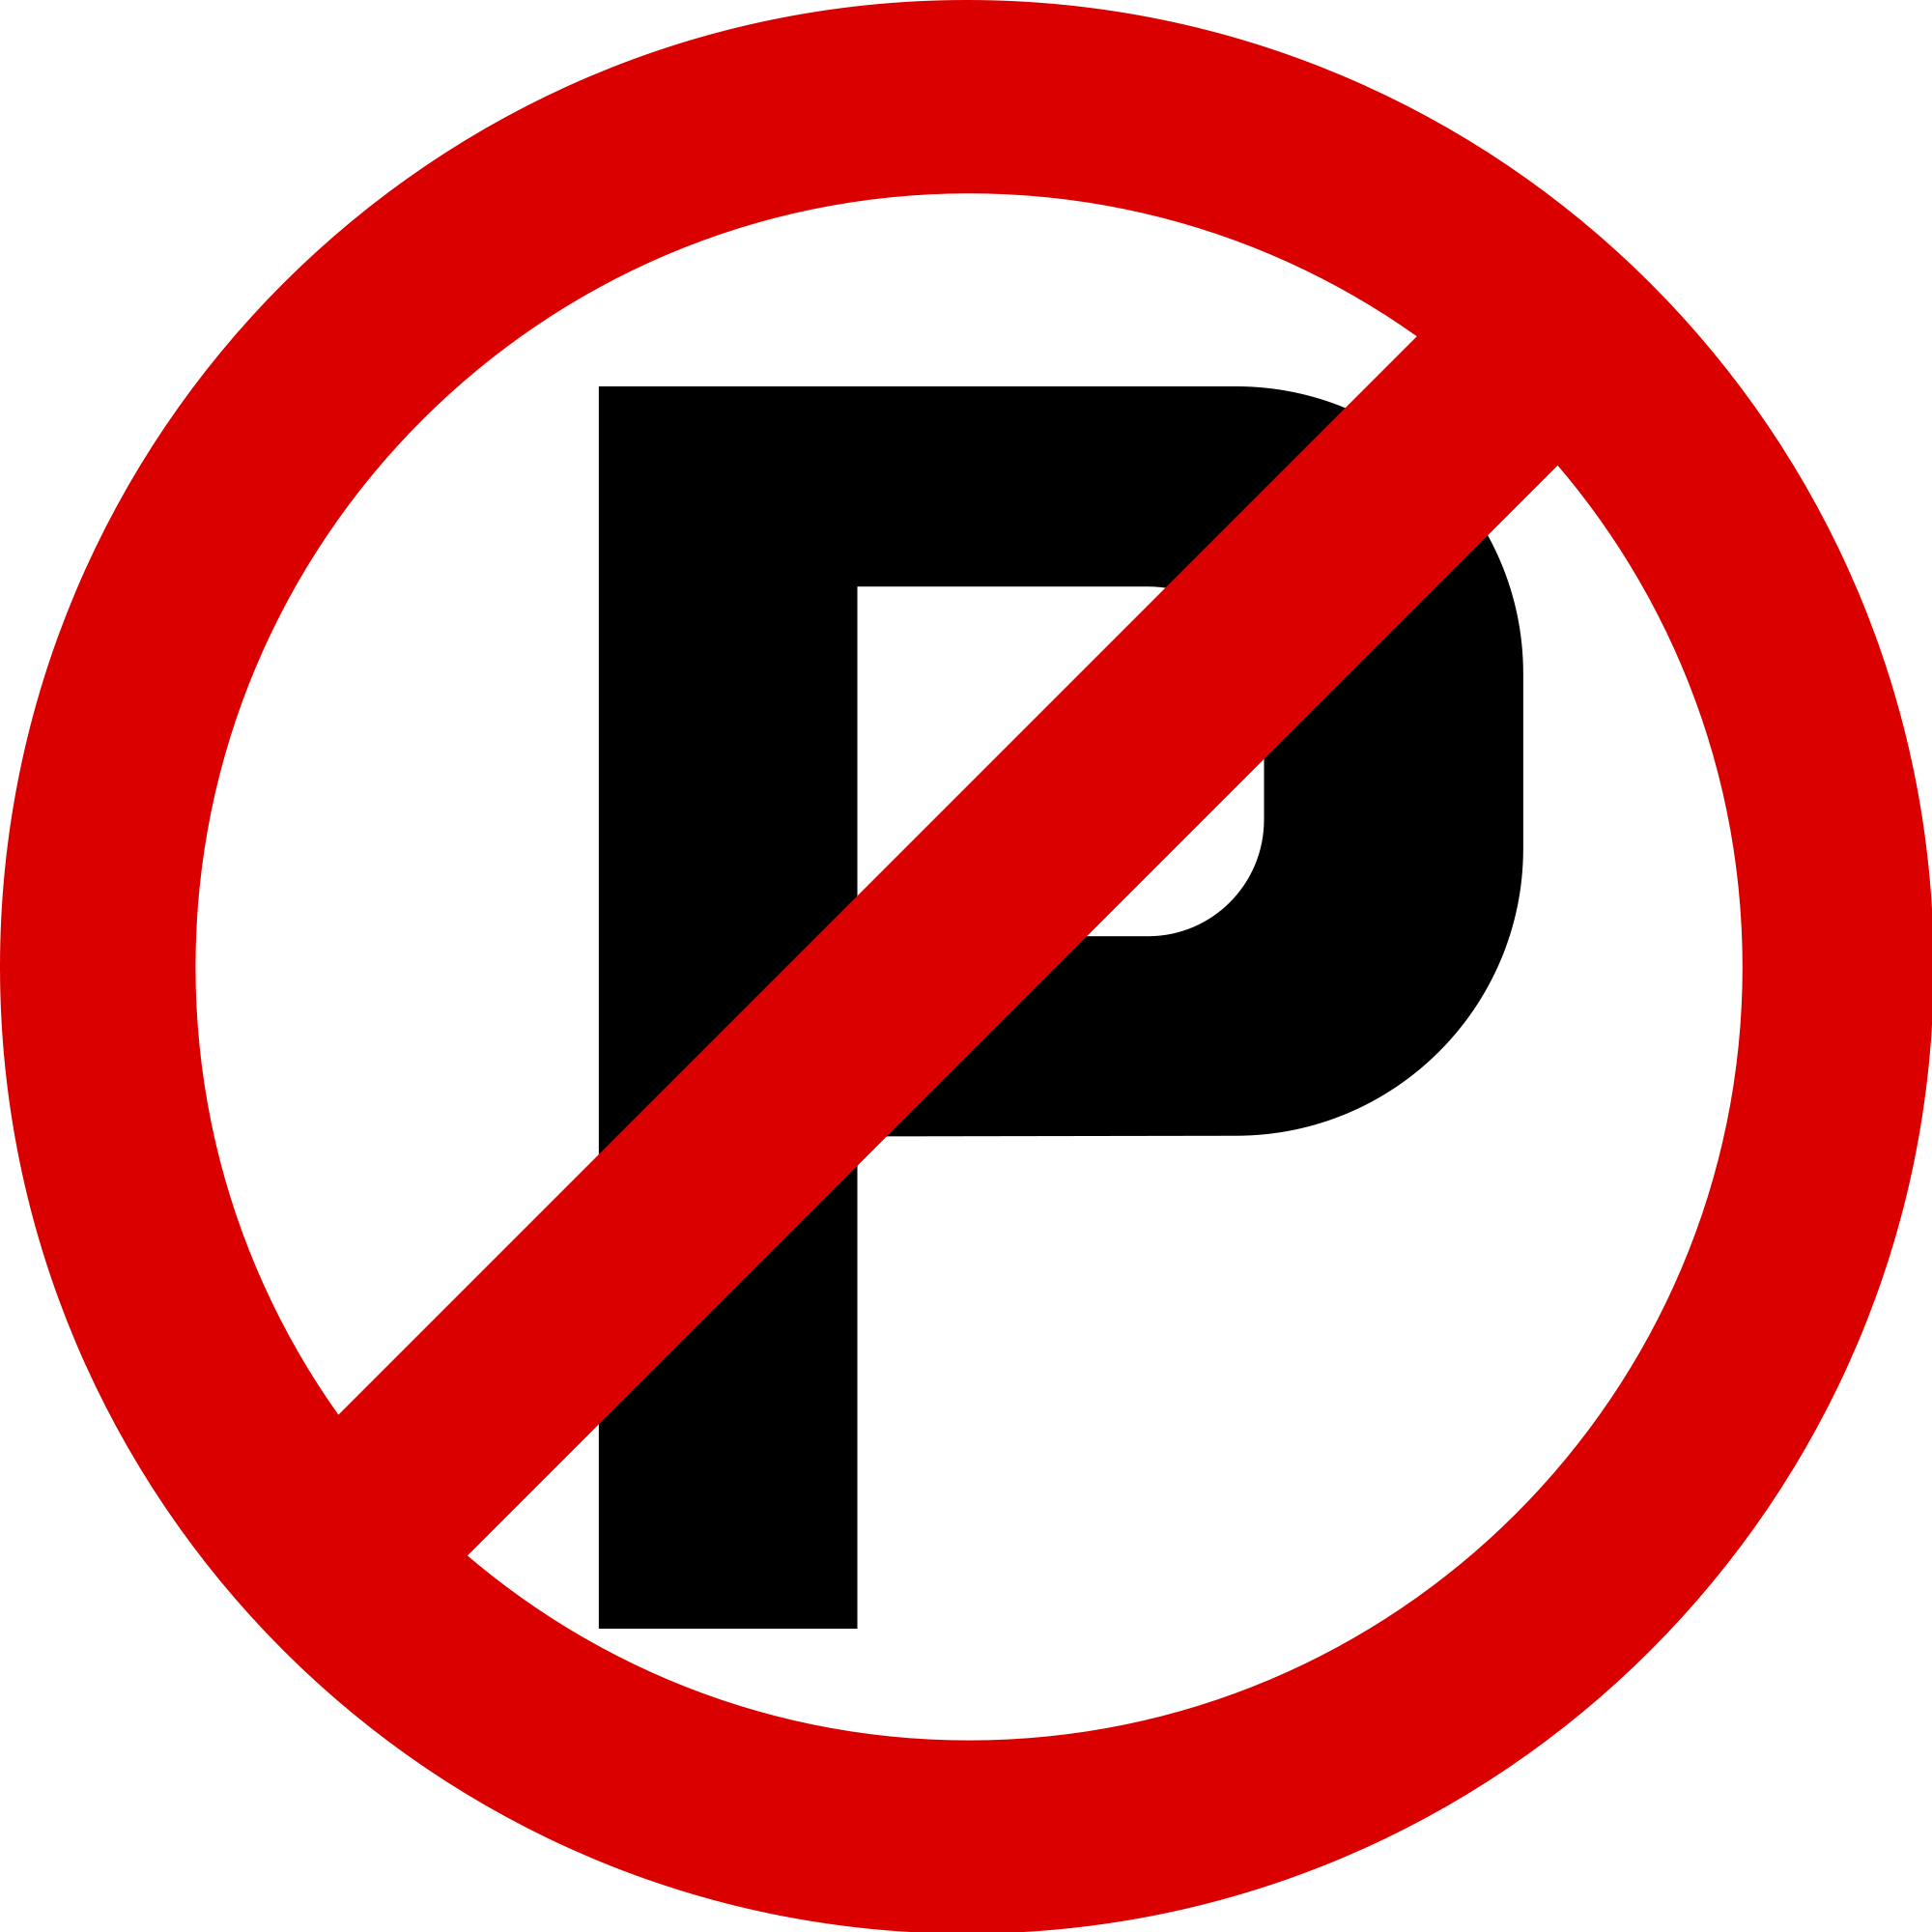 No Parking Vector.